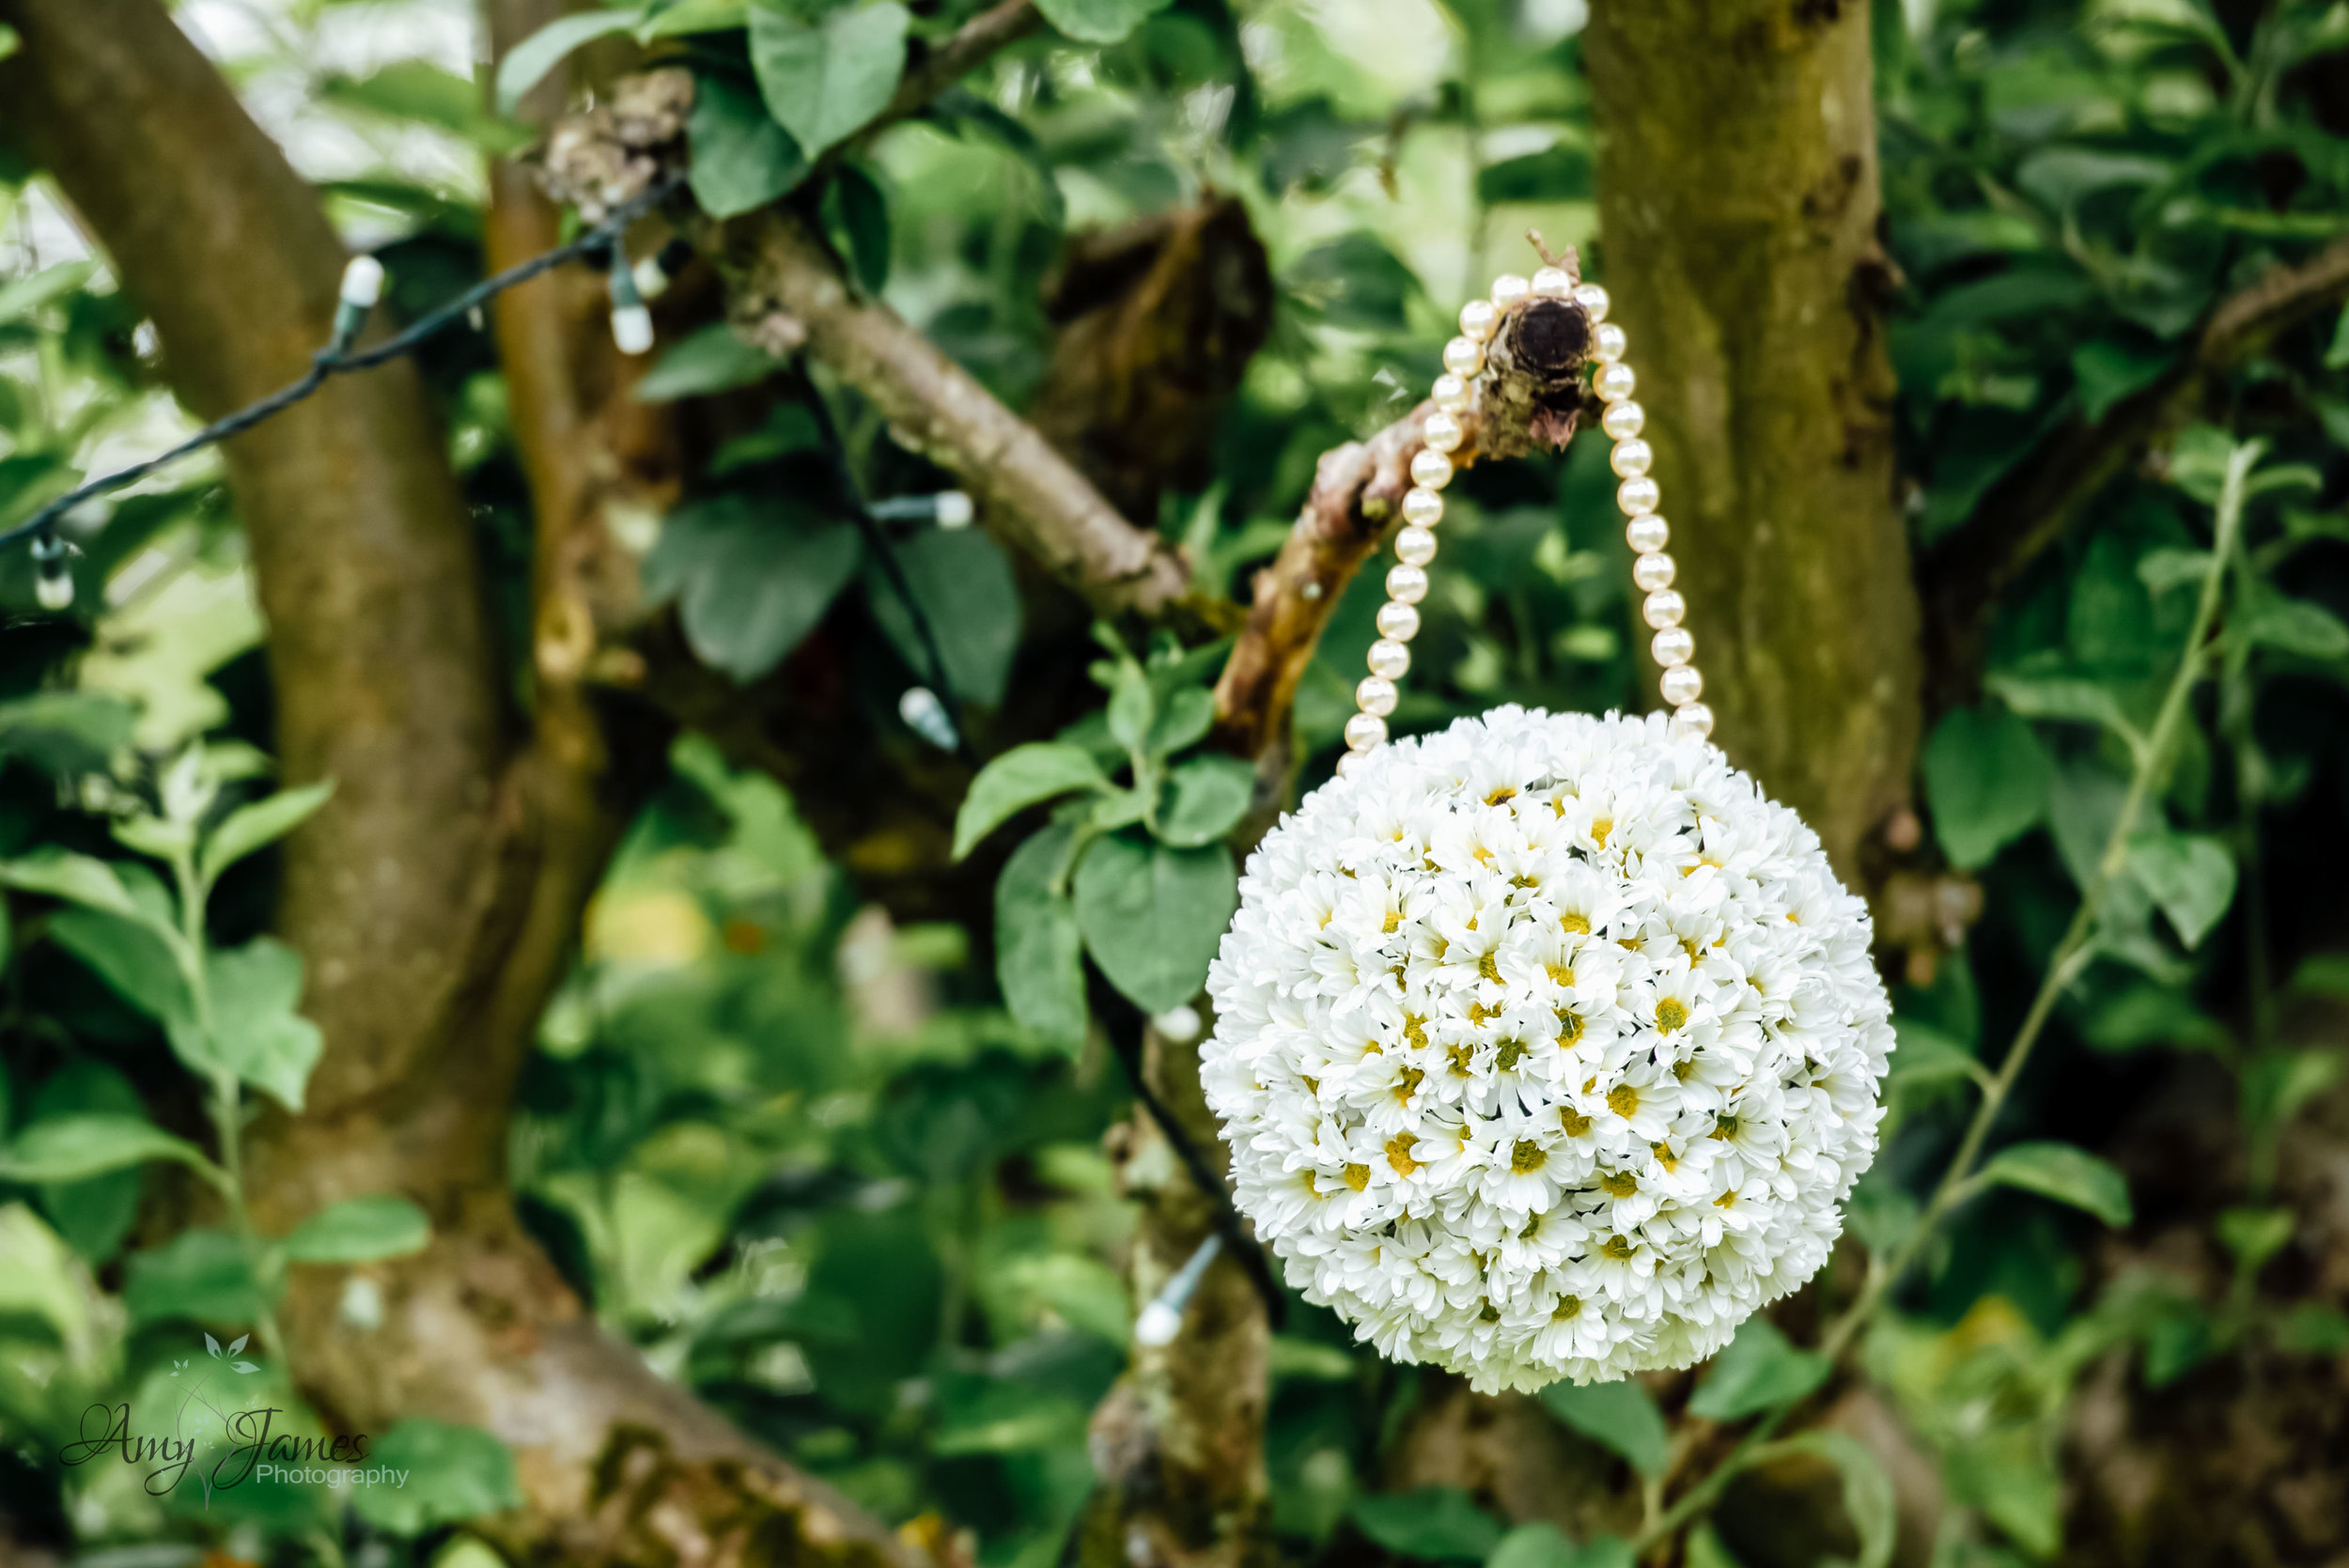 Flower ball in tree at an outdoor wedding ceremony - Amy James Photography